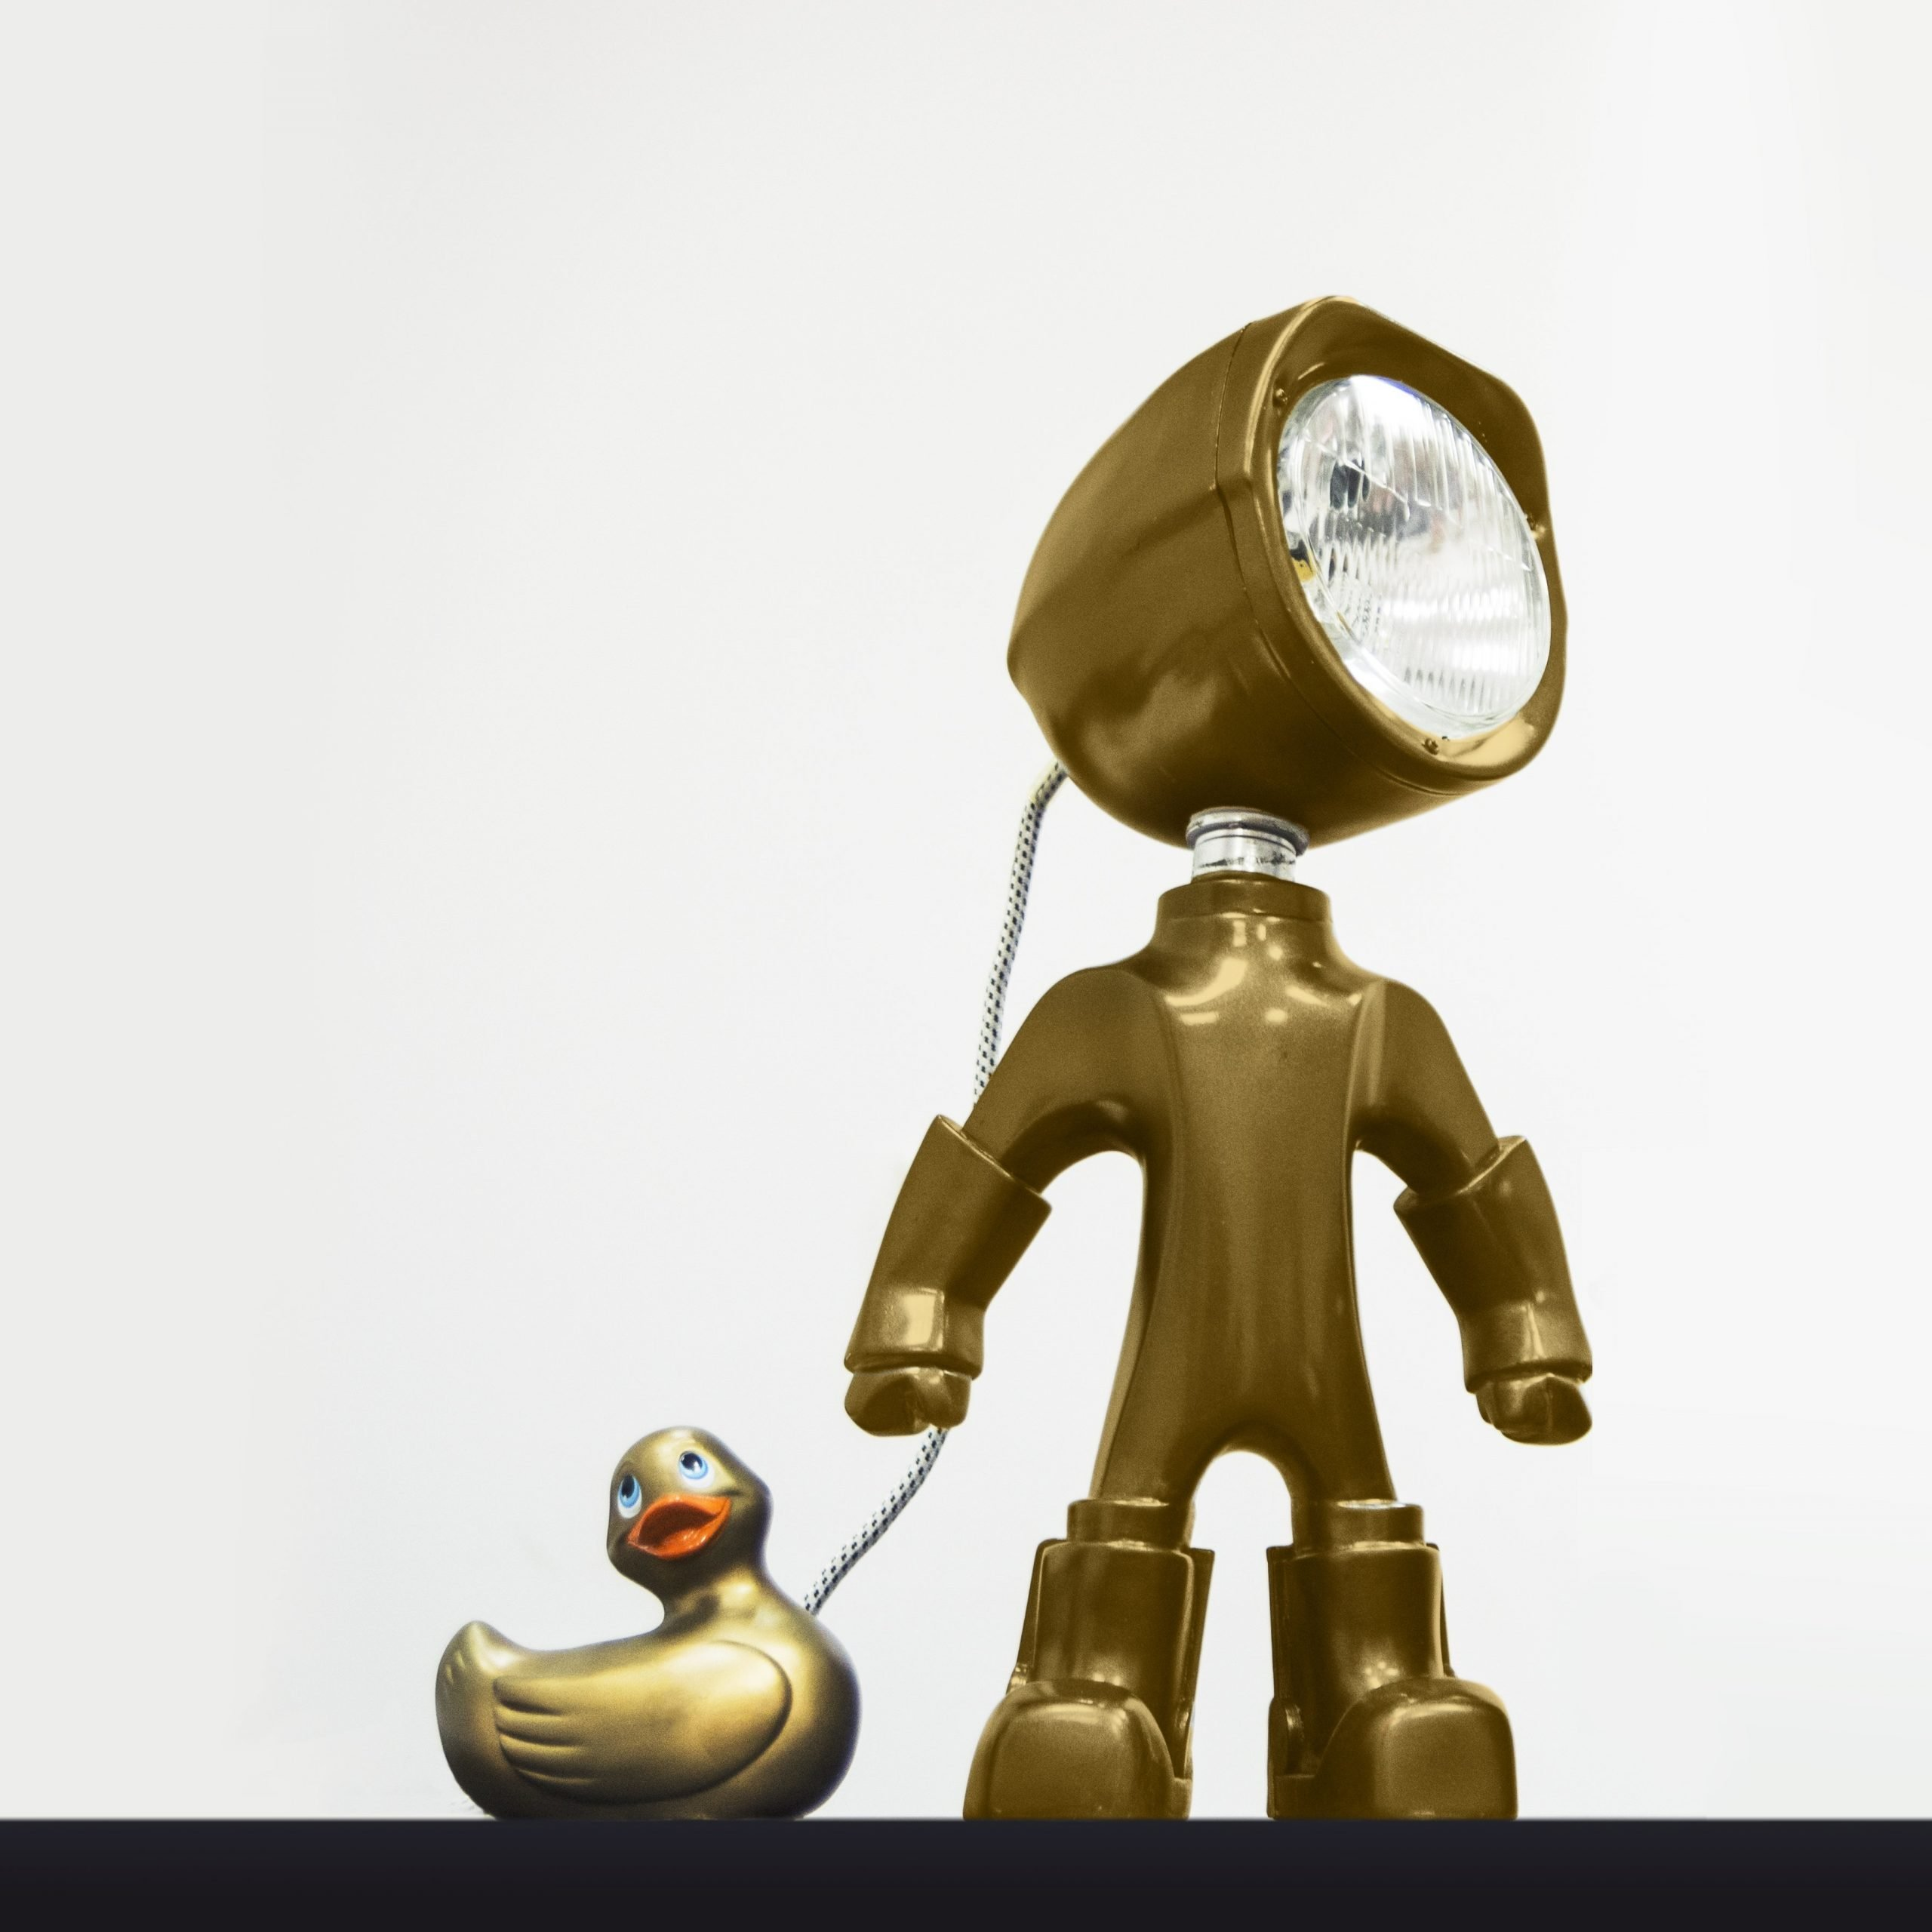 The Lampster Gold BINK lampen